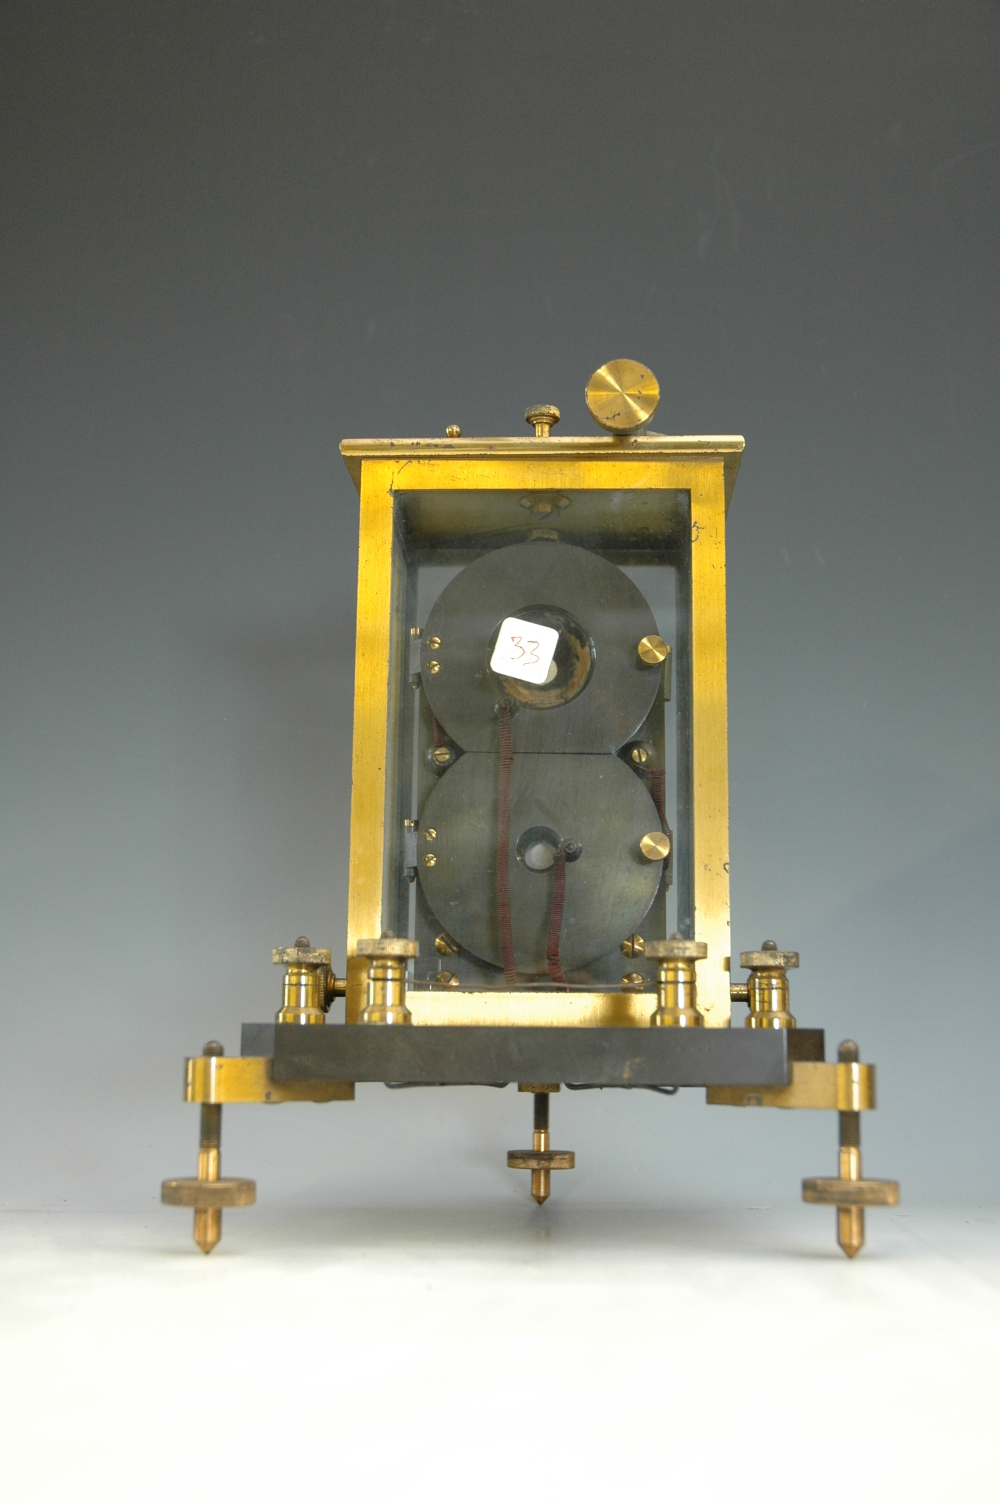 preview image for Astatic Suspension/Reflecting Galvanometer and Case by Elliott Brothers, London, 19th Century